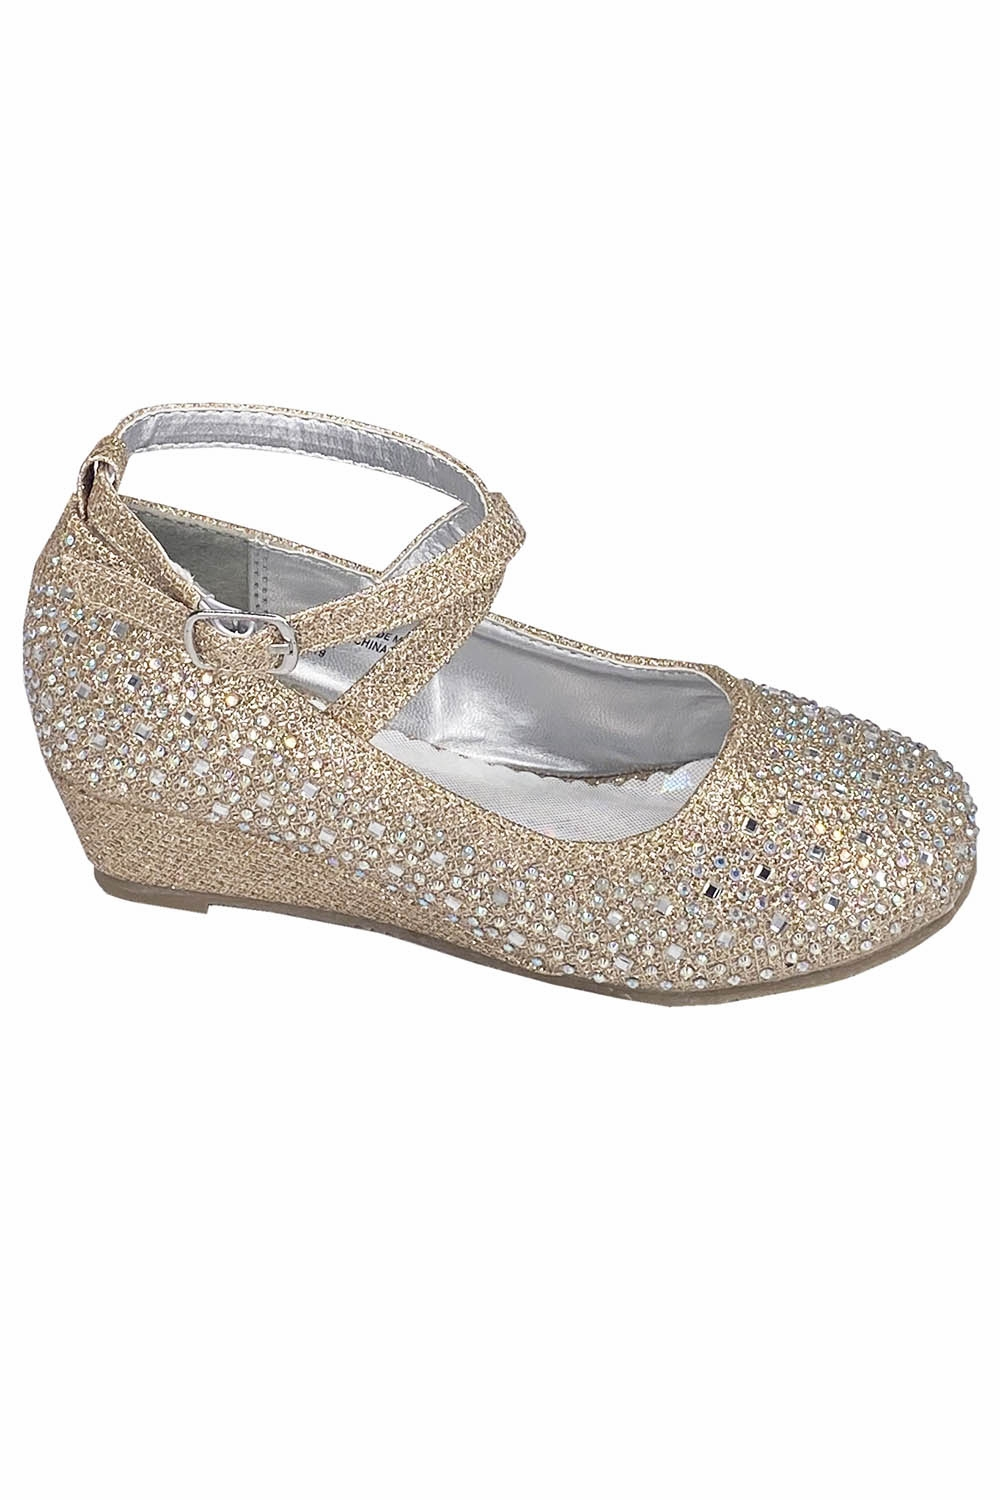 gold glitter wedge shoes